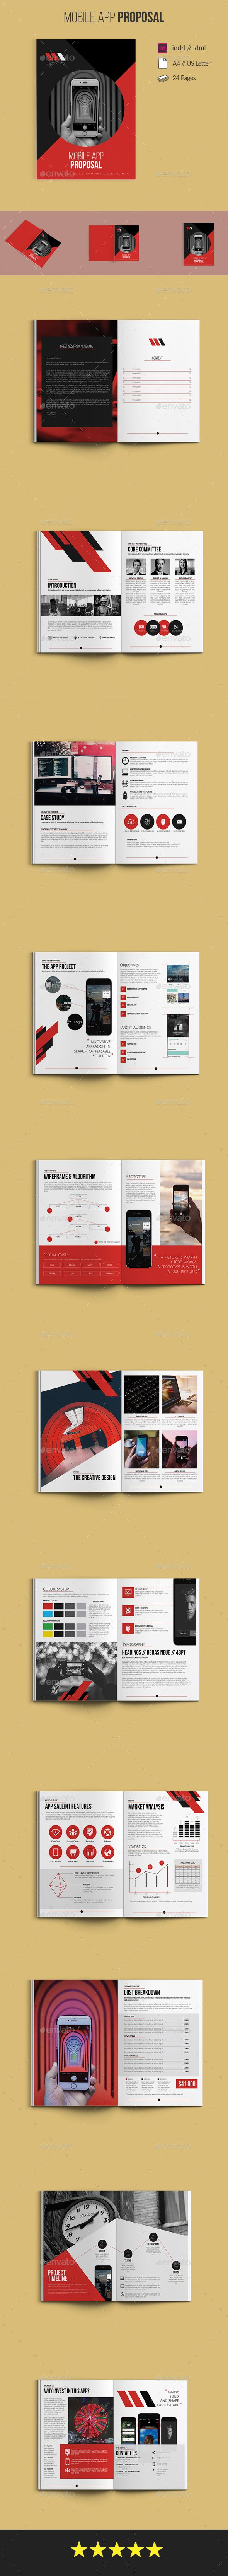 Mobile App Proposal | Proposal templates, Proposals and Mobile app